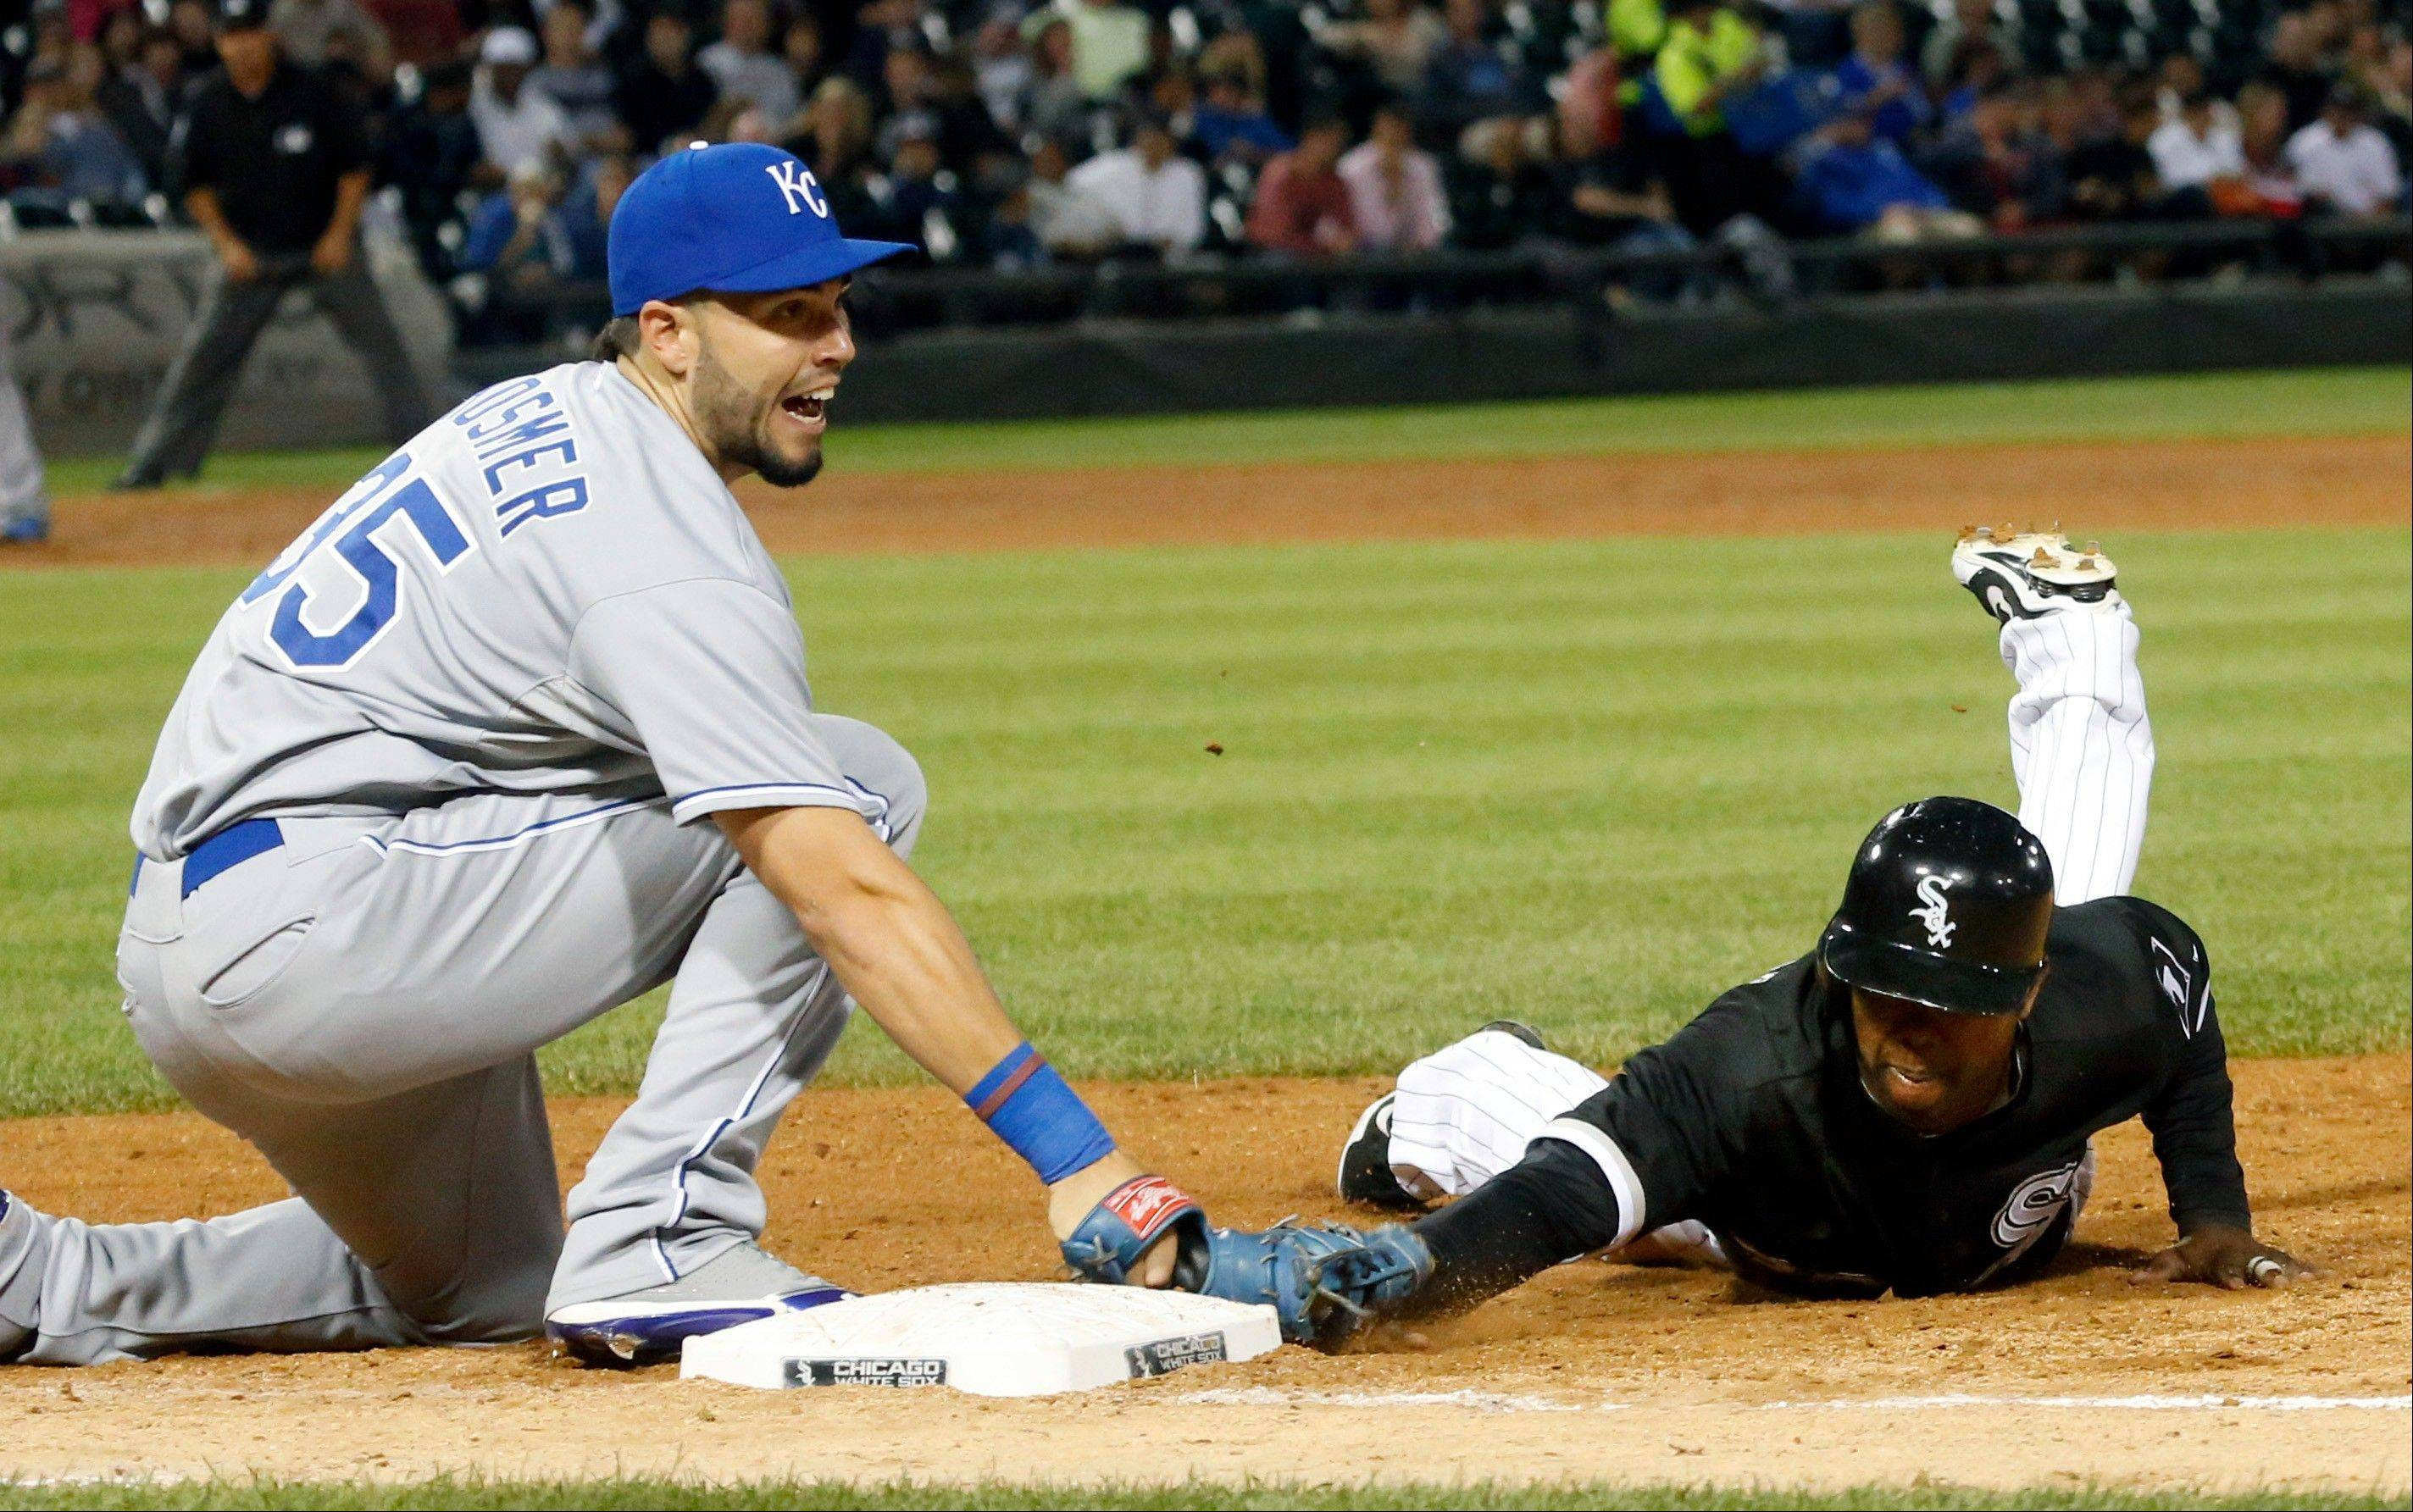 Kansas City Royals first baseman Eric Hosmer (35) looks toward first base umpire Manny Gonzalez as he picks off Chicago White Sox's Alejandro De Aza, right, on a throw from starting pitcher James Shields during the fifth inning of a baseball game on Friday, July 26, 2013, in Chicago.